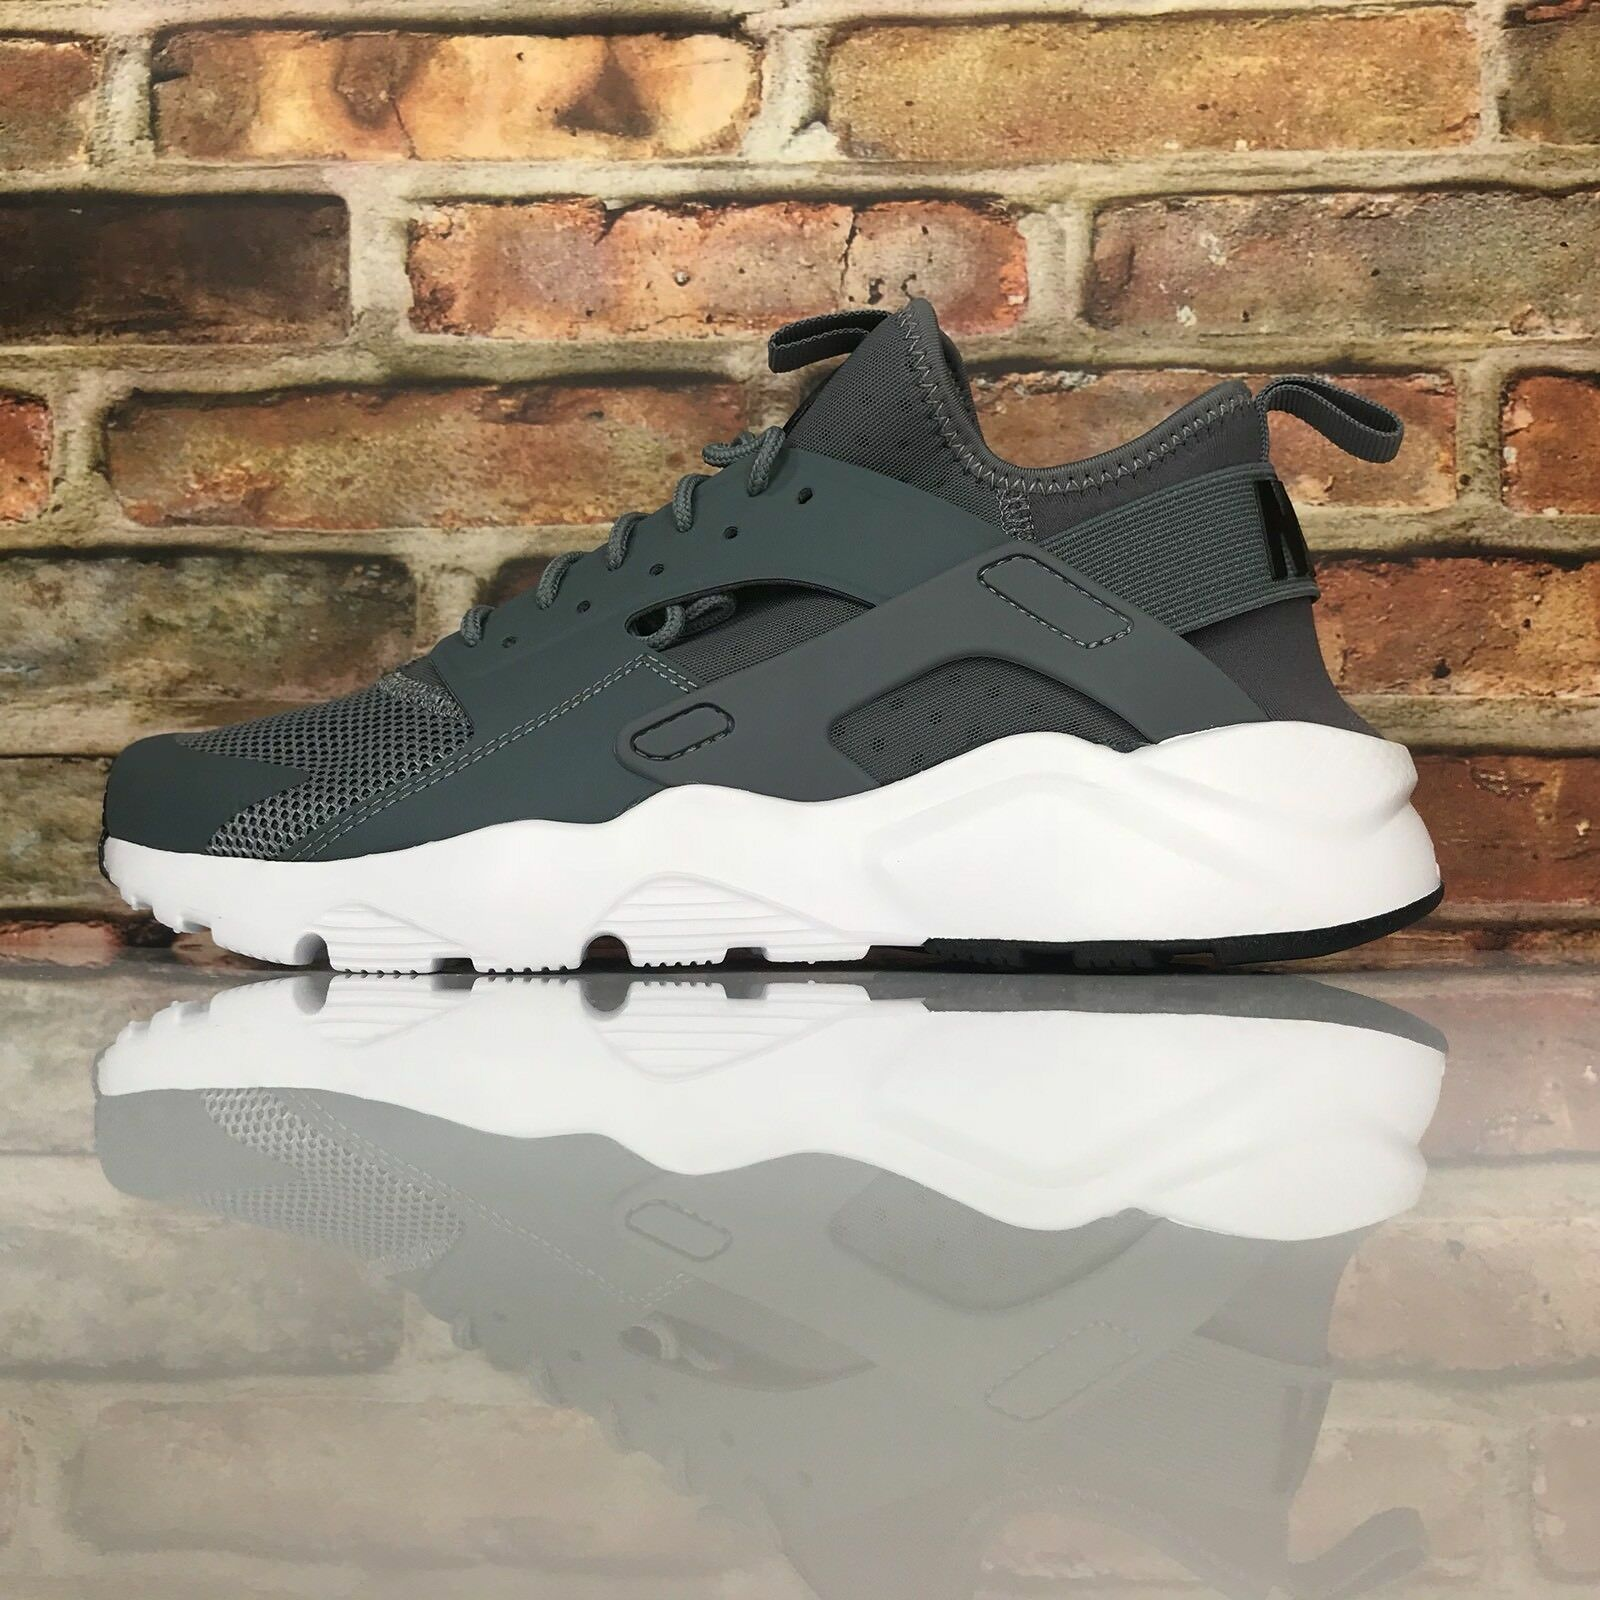 new style 305f2 6d126 nike air huarache cours ultra cool gris - - - blanc et des chaussures  taille 9 24cbbf